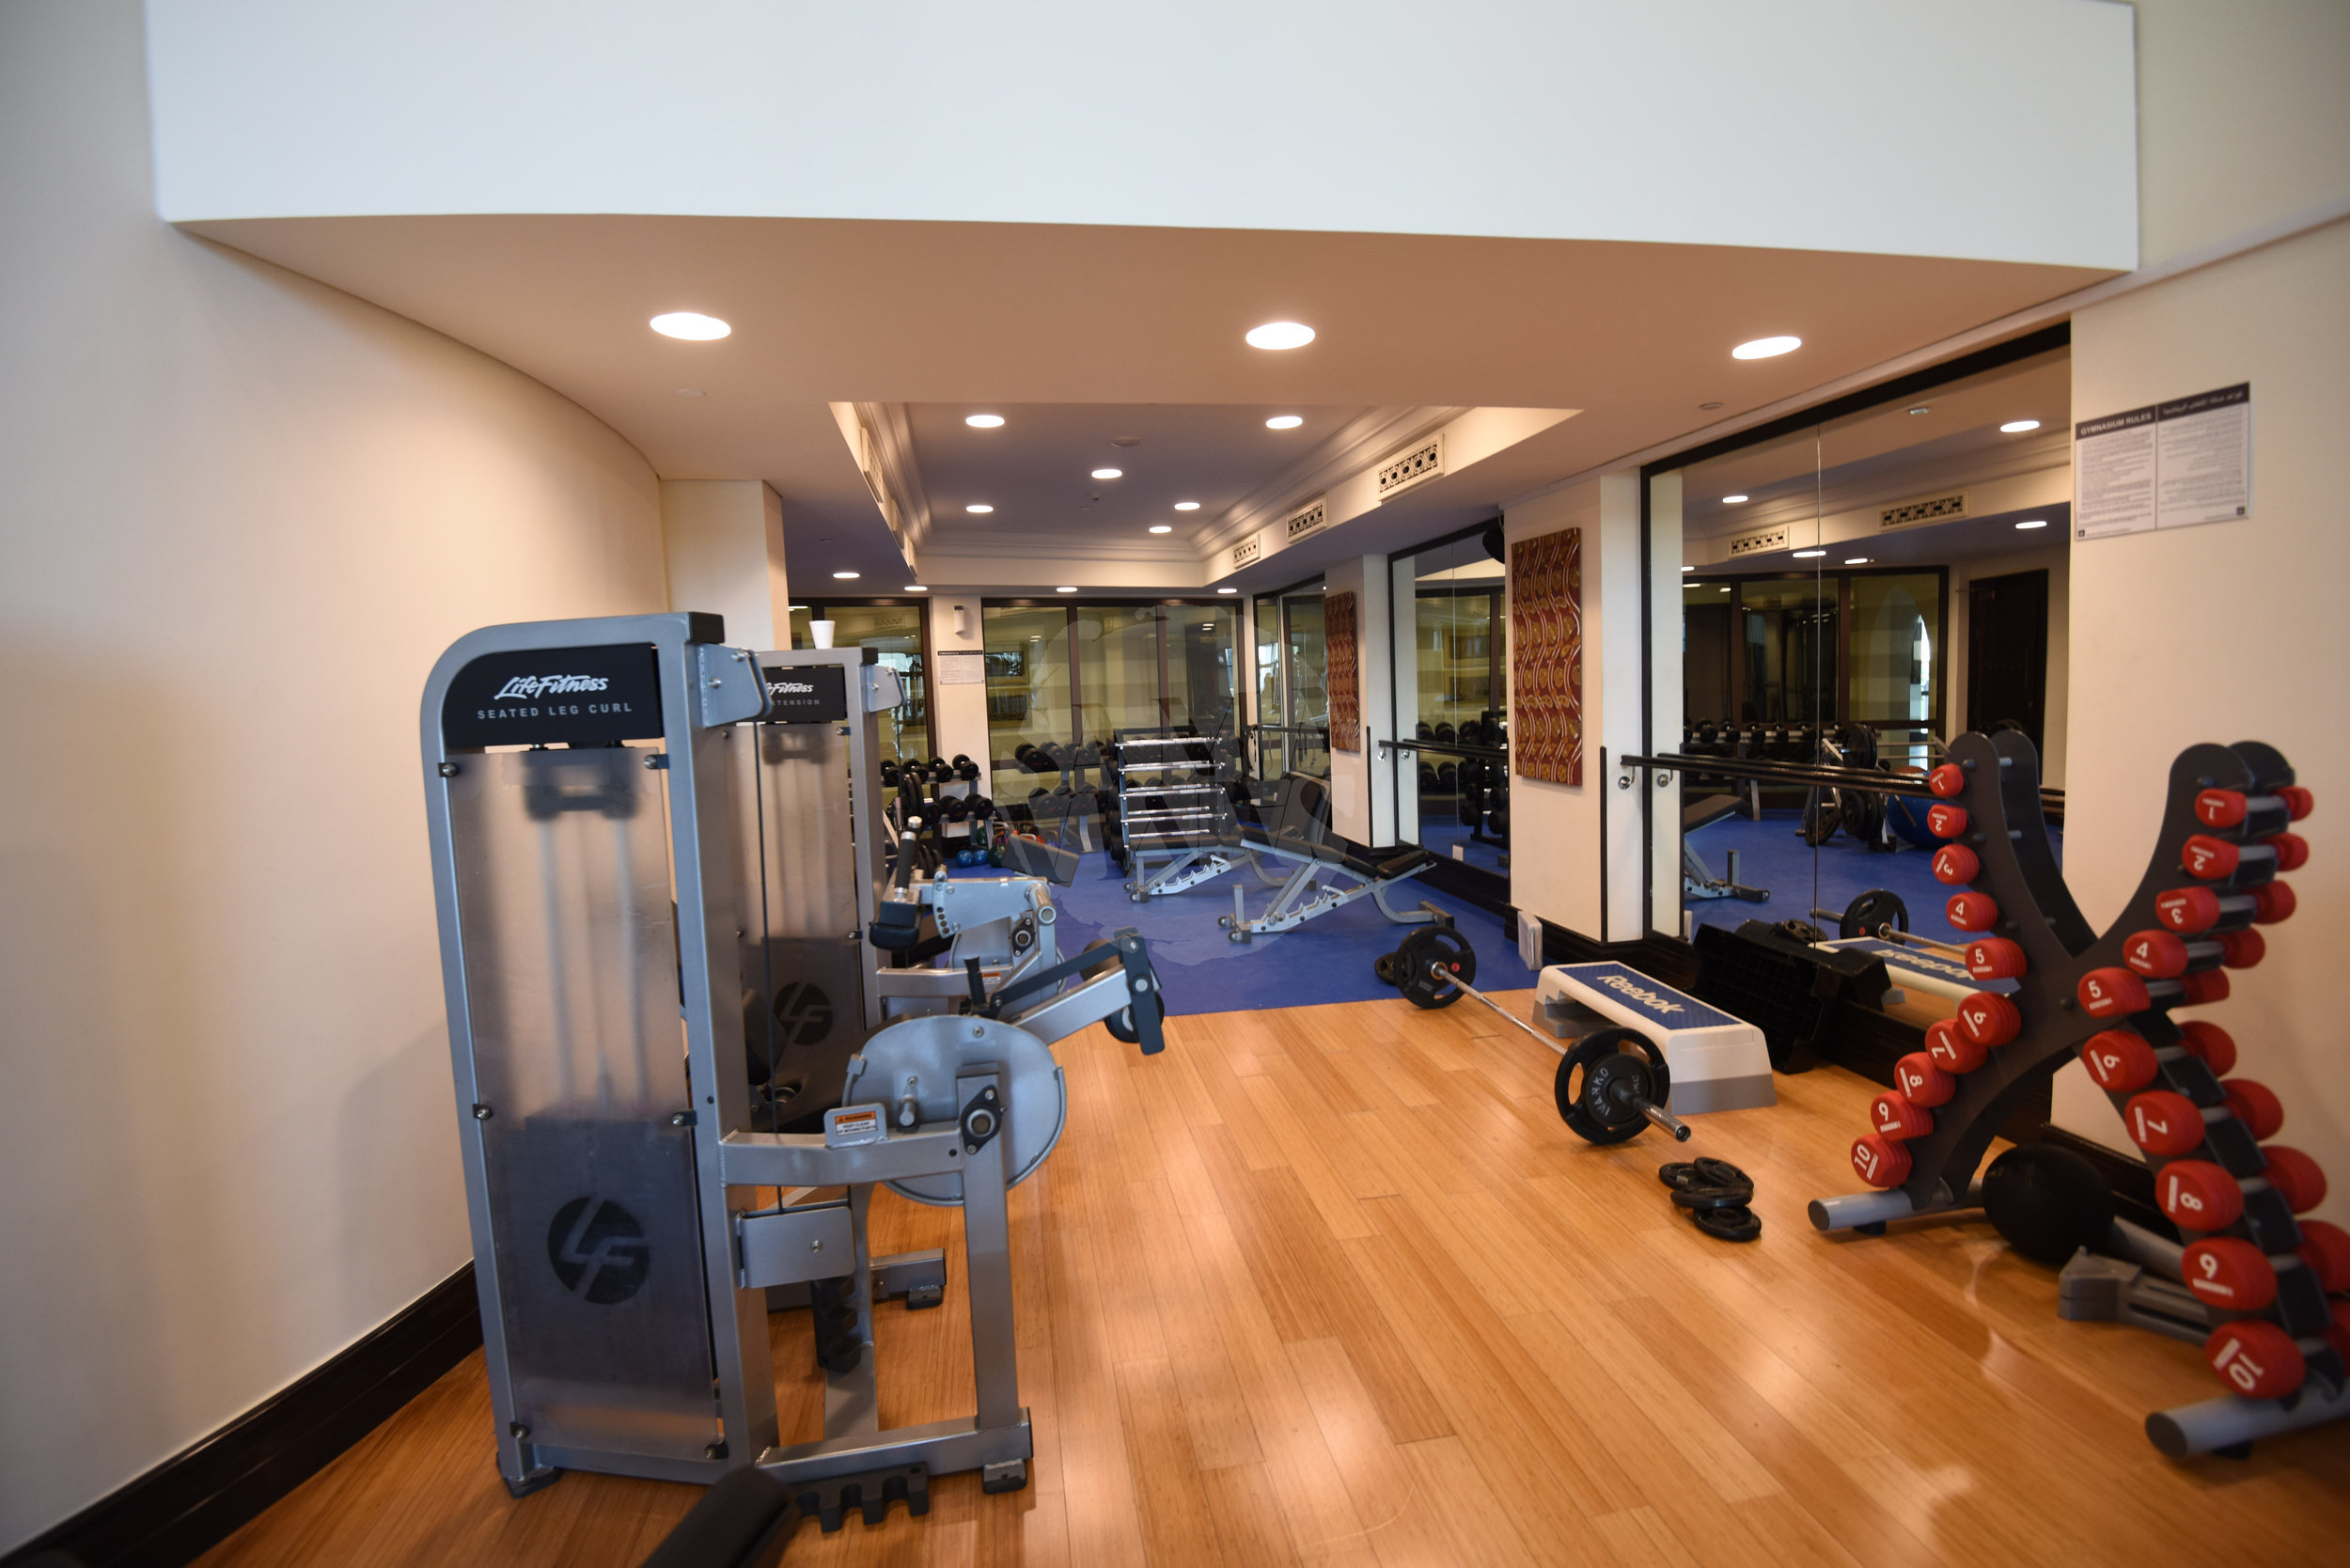 There is a state of the art gym, with the latest fitness equipment for cardio workouts, weightlifting or stretching exercises